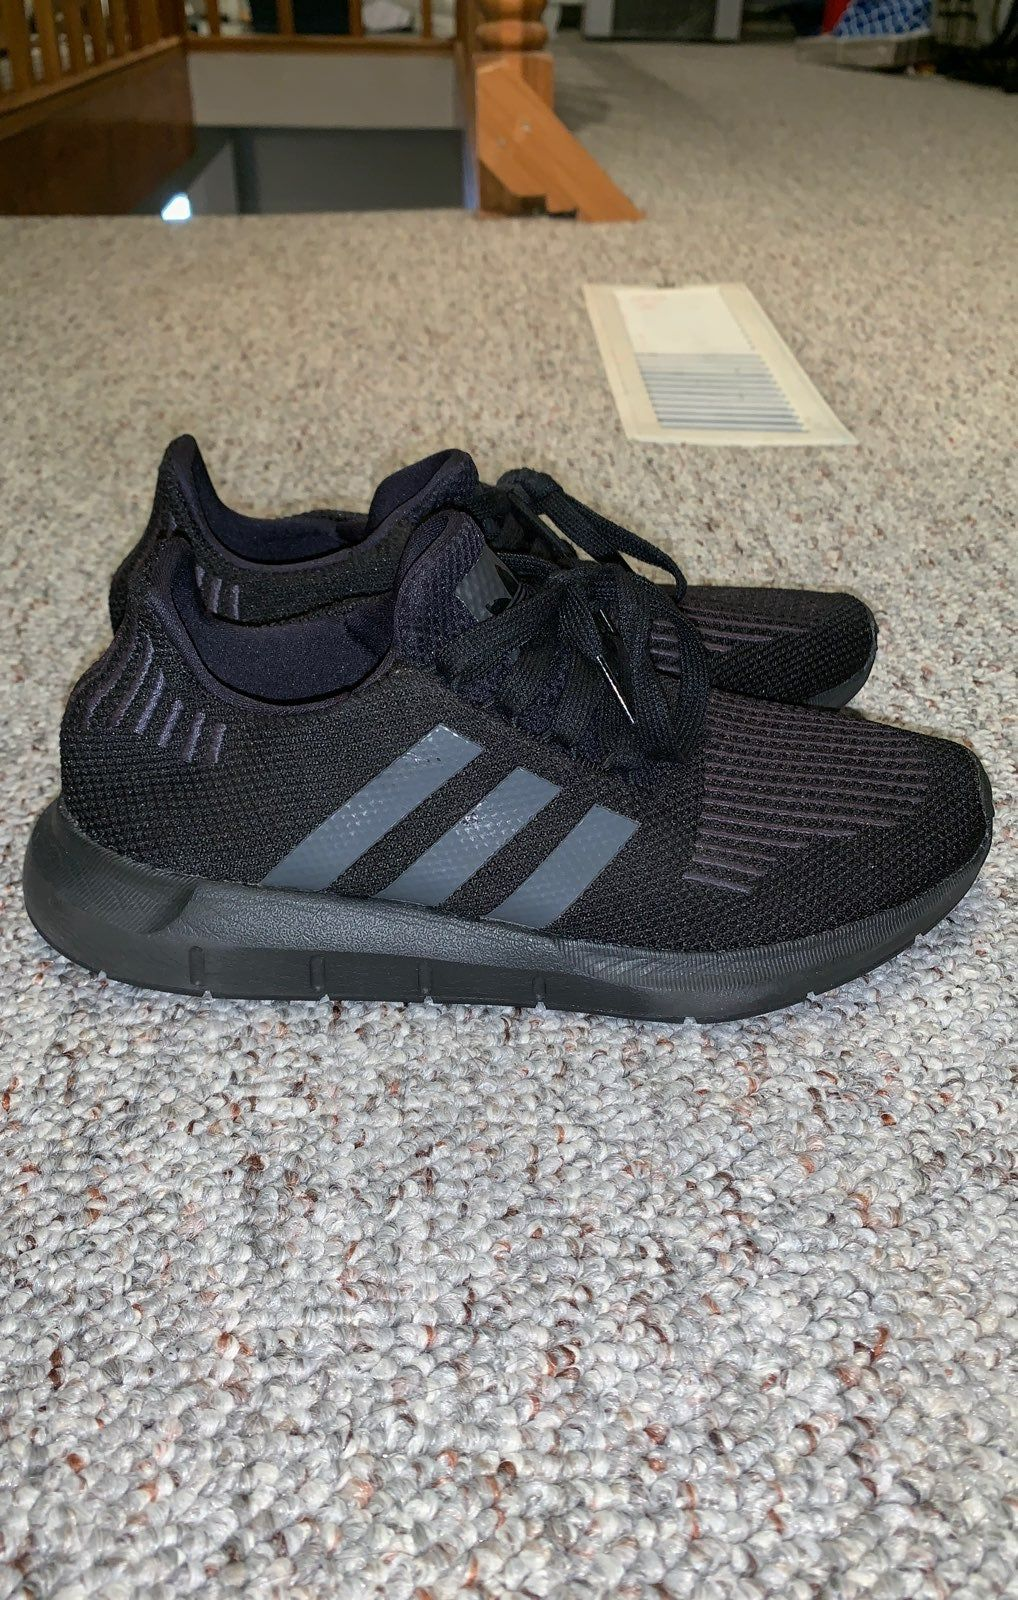 Adidas boys shoes size 6 but fits women sizes 7.58. Only